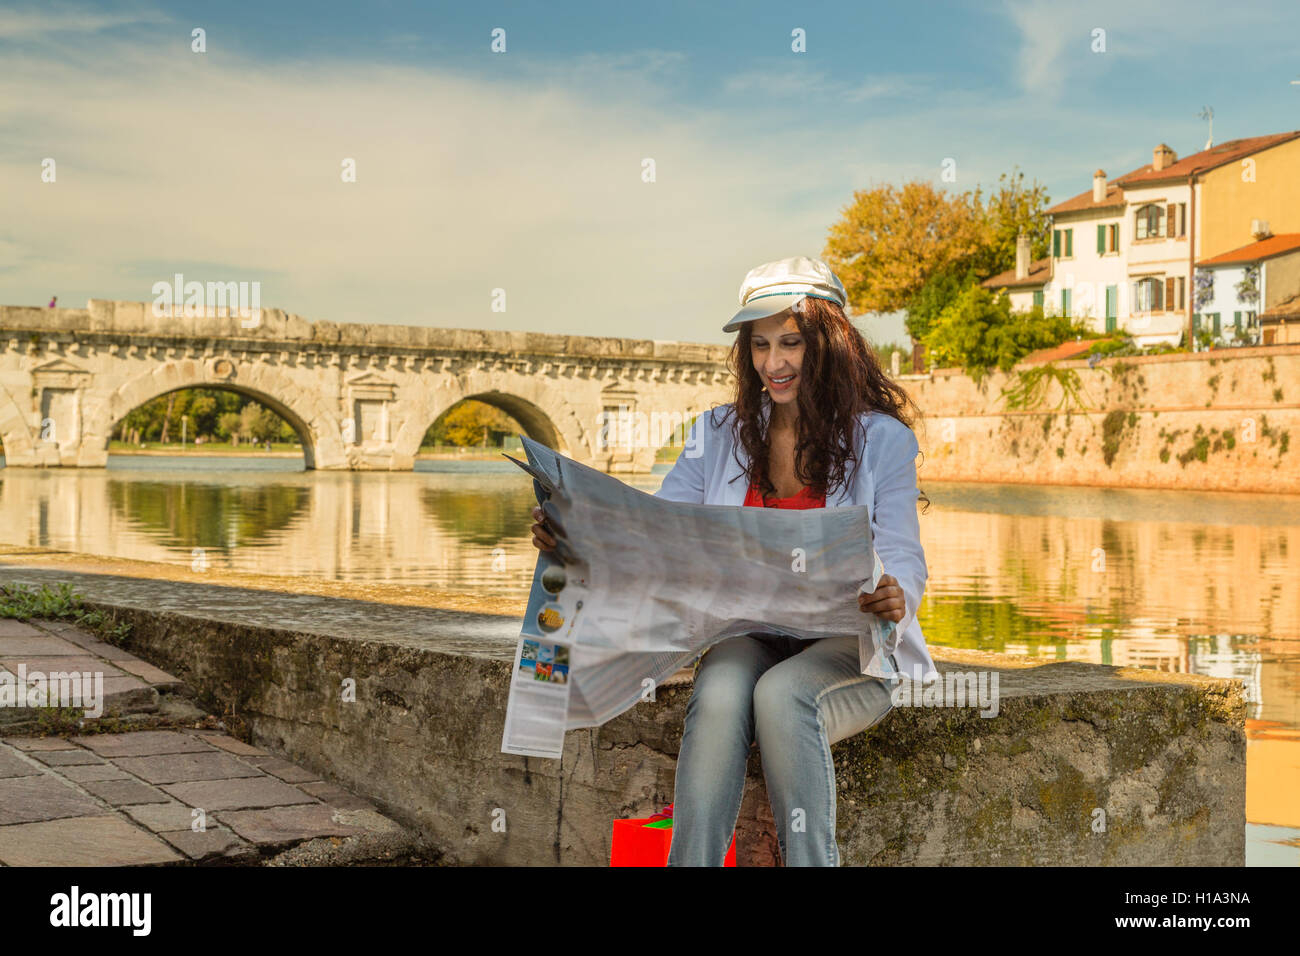 Rimini Italy Woman Consulting Tourist Map With Ancient Roman